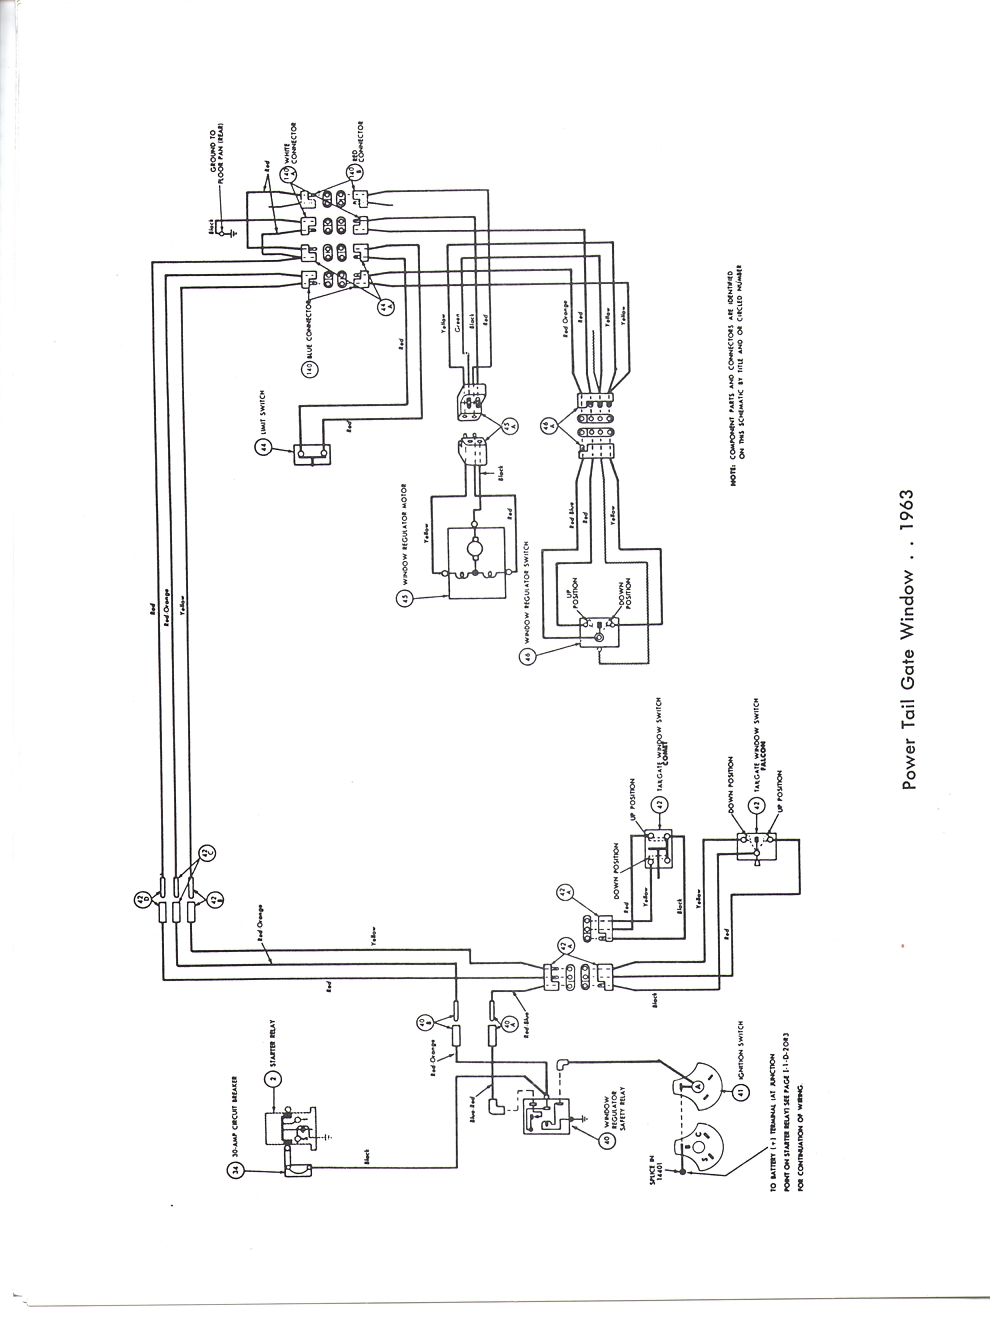 63 Ford Ranchero Wiring Diagrams on 1964 ford fairlane wiring diagram